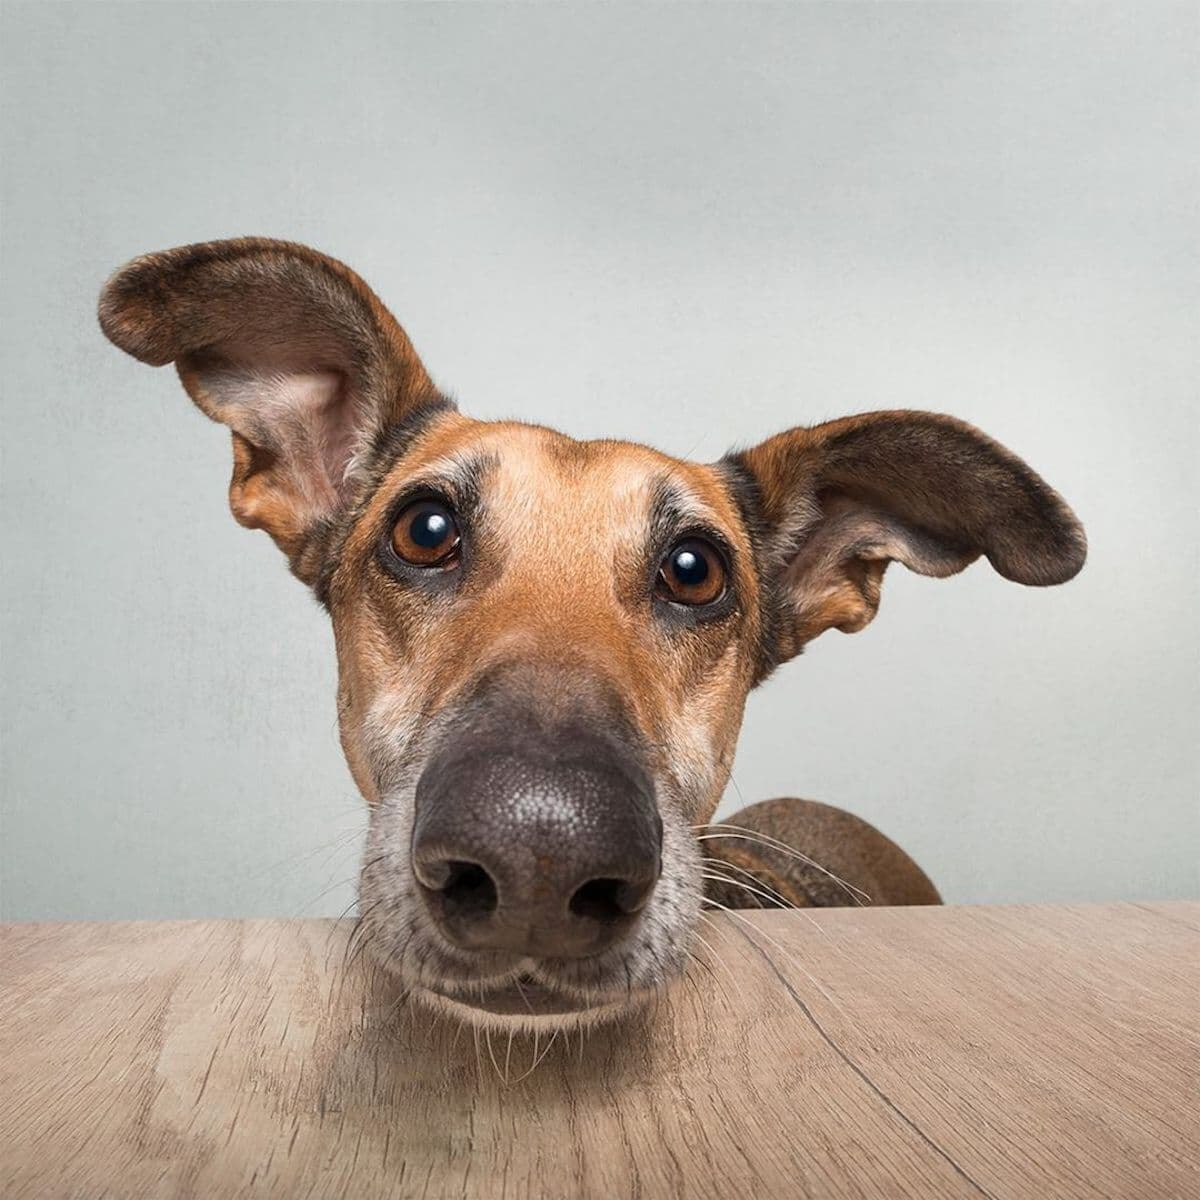 Dog Portrait Photography by Elke Vogelsang